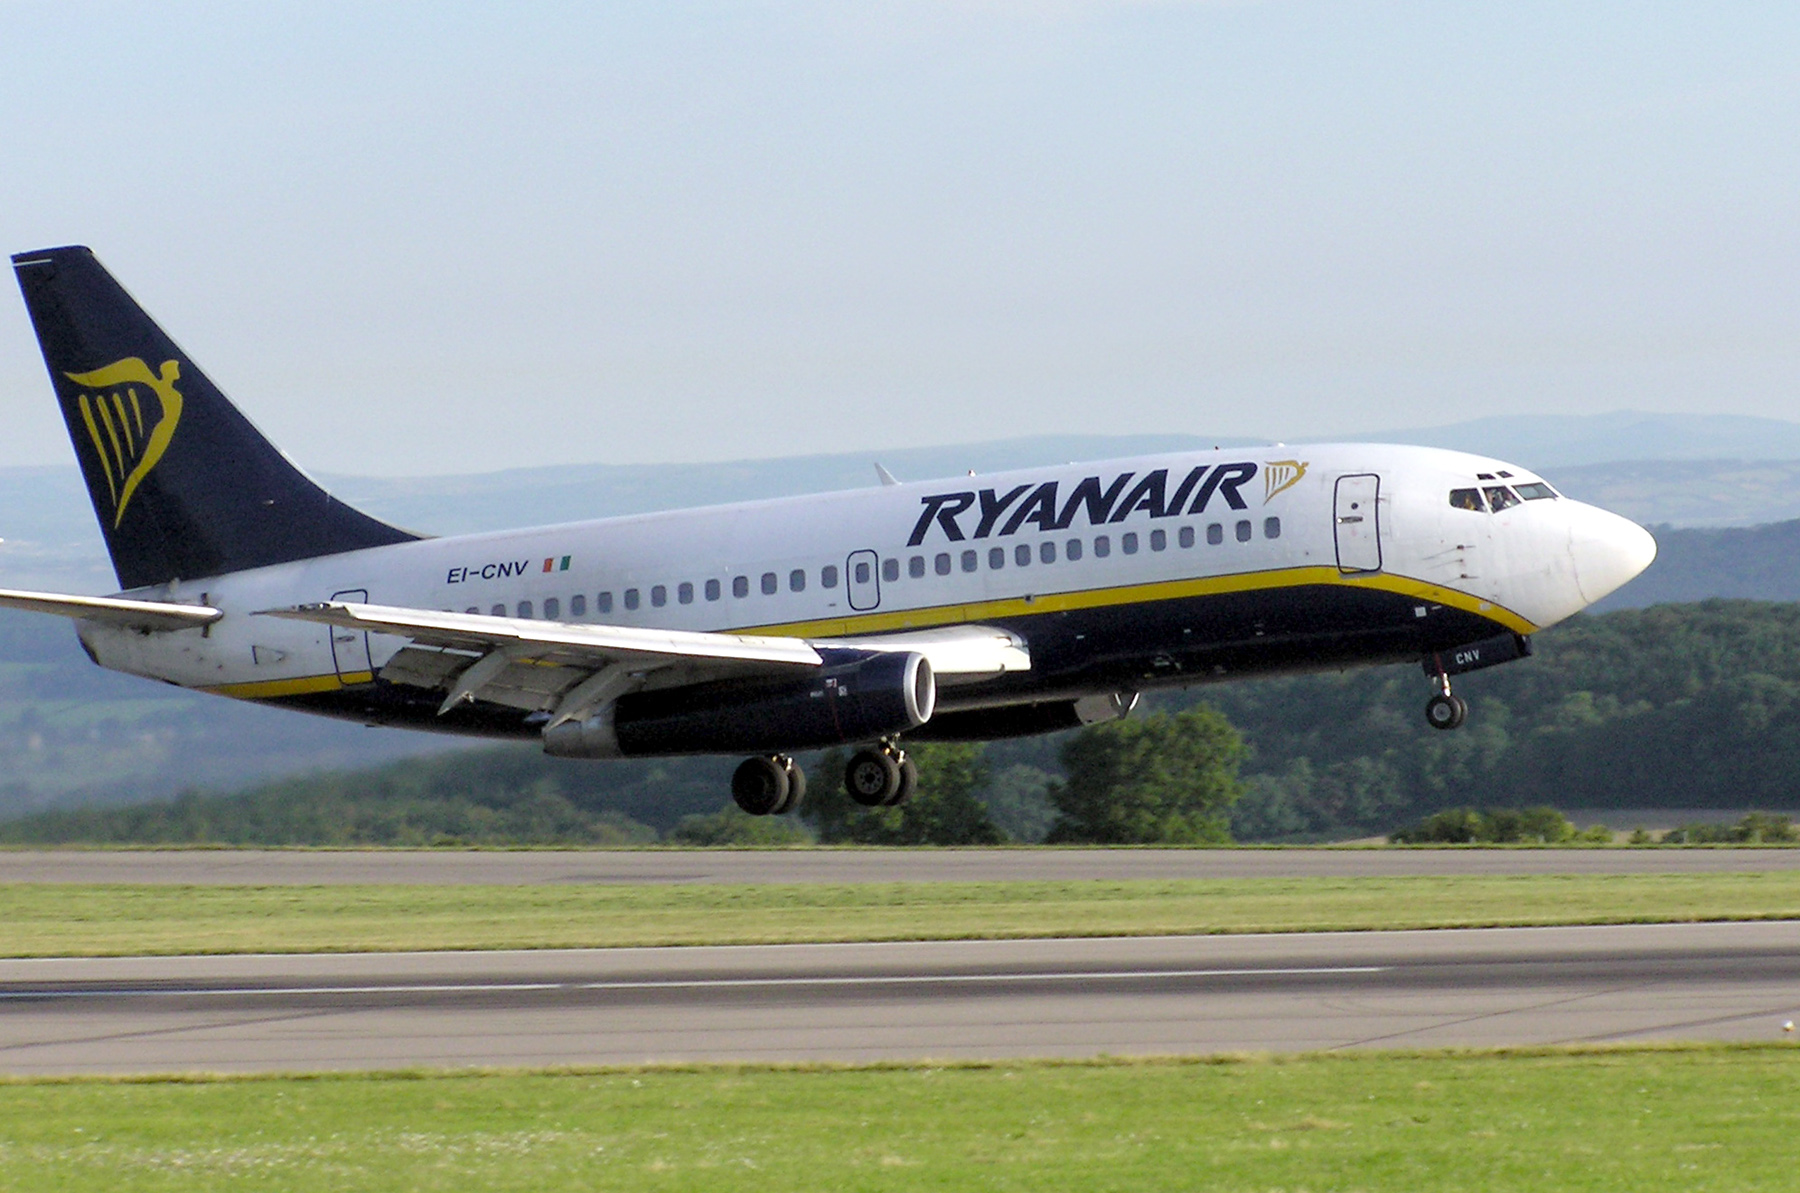 Ryanair among international airlines questioned over credit card charges